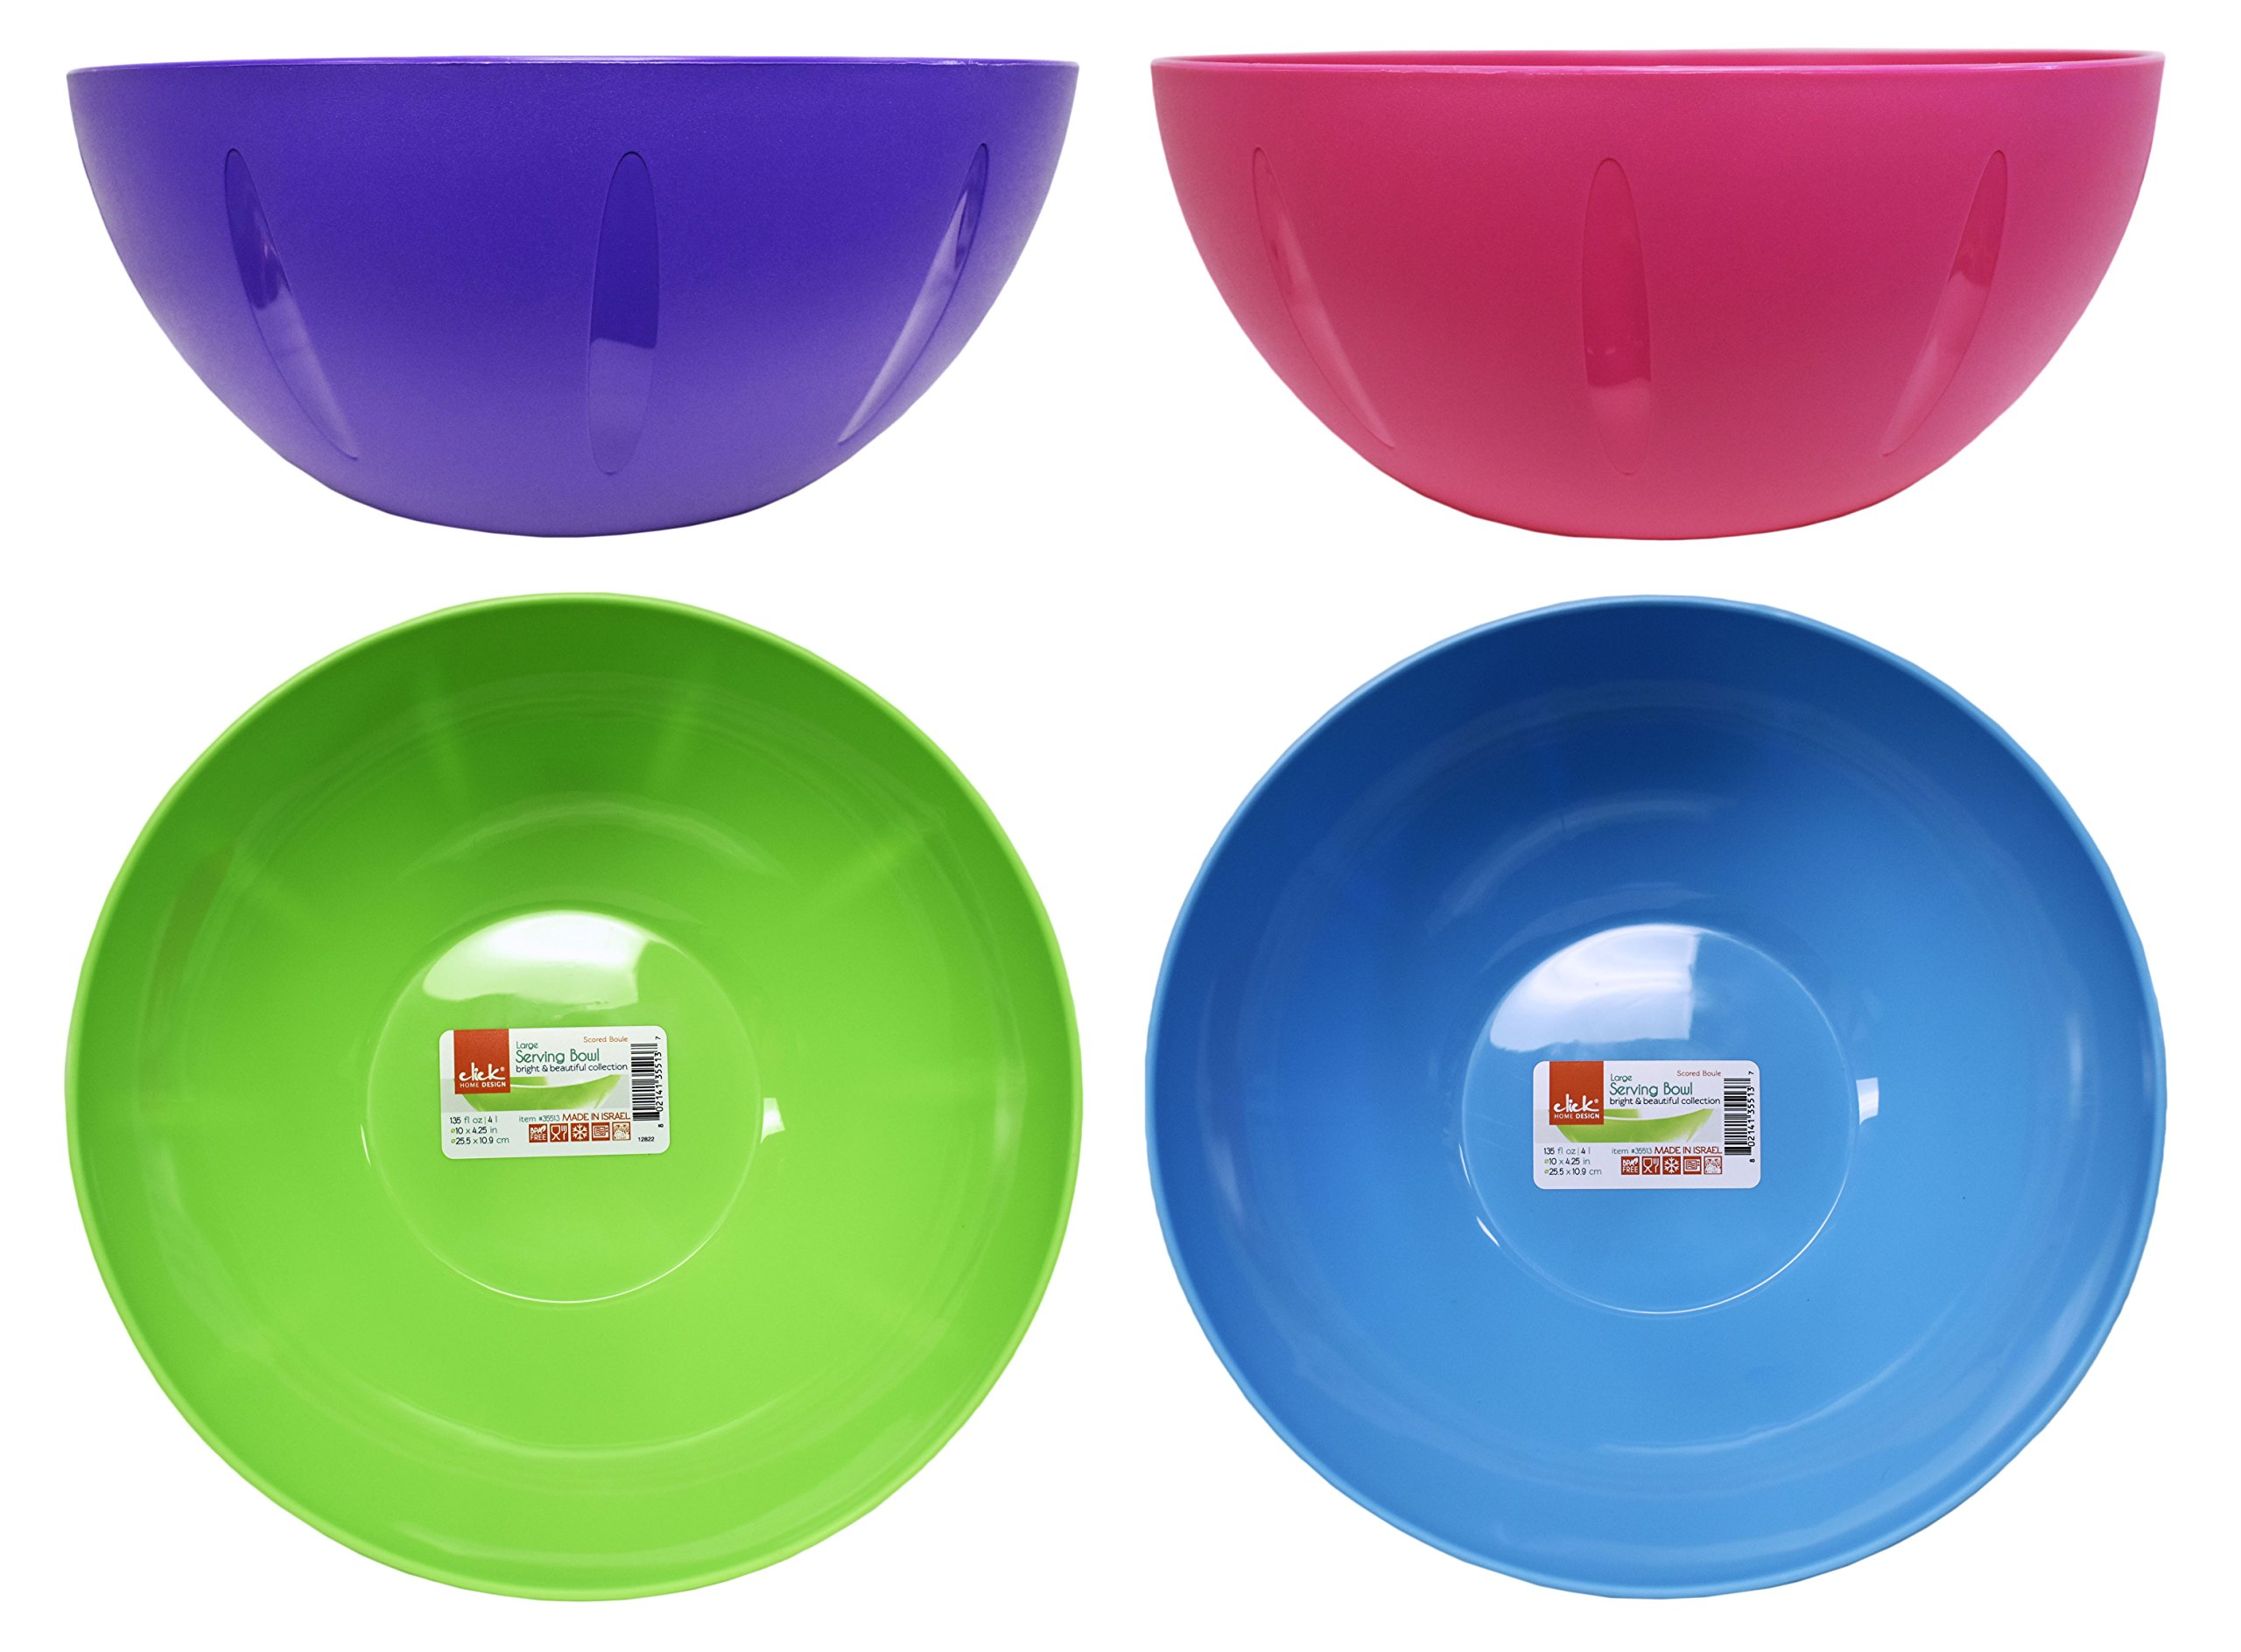 Set of 4 Click Home Design Serving and Mixing Bowls - Bright and Beautiful Collection - 7.8'' x 3.5'' - 57 Fluid Oz - Serving Bowls Perfect for Kitchen, Party, Event or Home! (4, Multi Set)